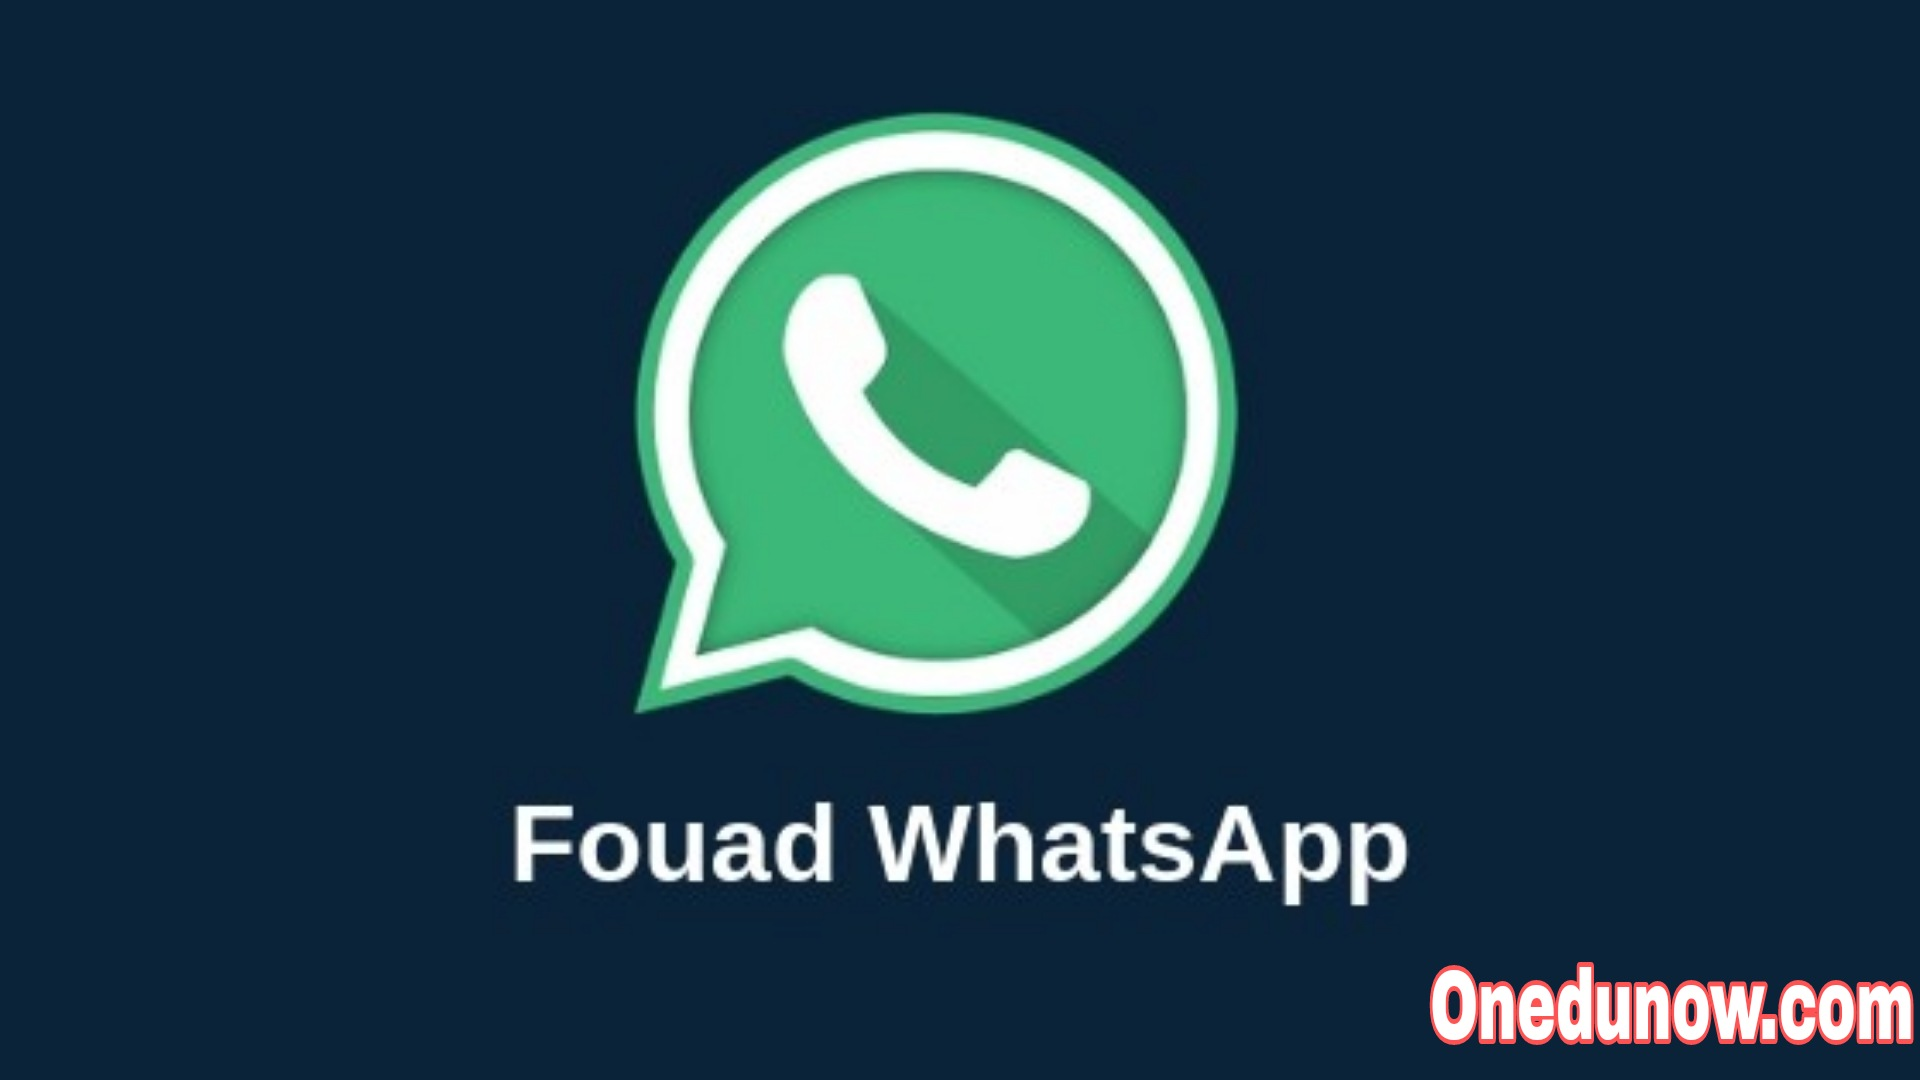 Fouad WhatsApp APK Download Latest Version (Updated) 2021